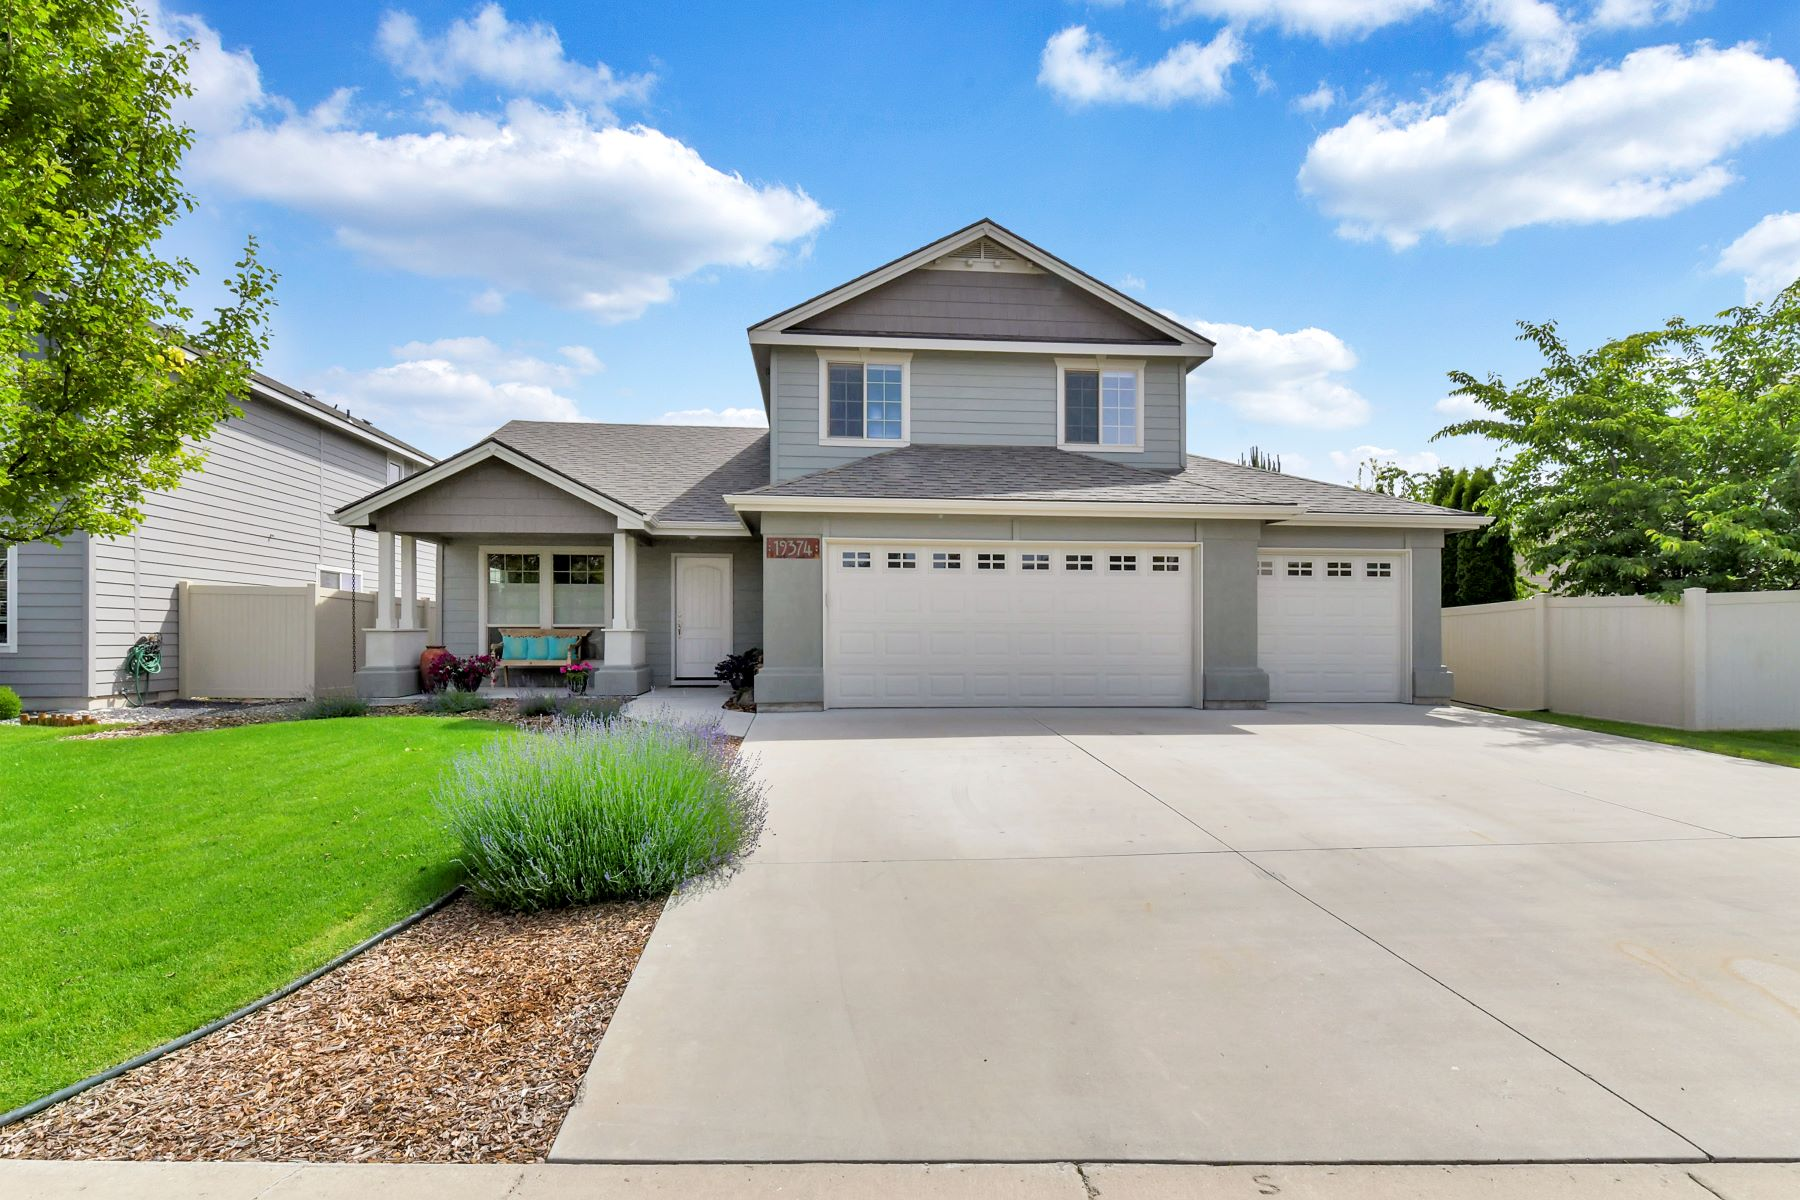 Single Family Homes for Sale at 19374 Goldfinch Way, Caldwell 19374 Goldfinch Way Caldwell, Idaho 83605 United States